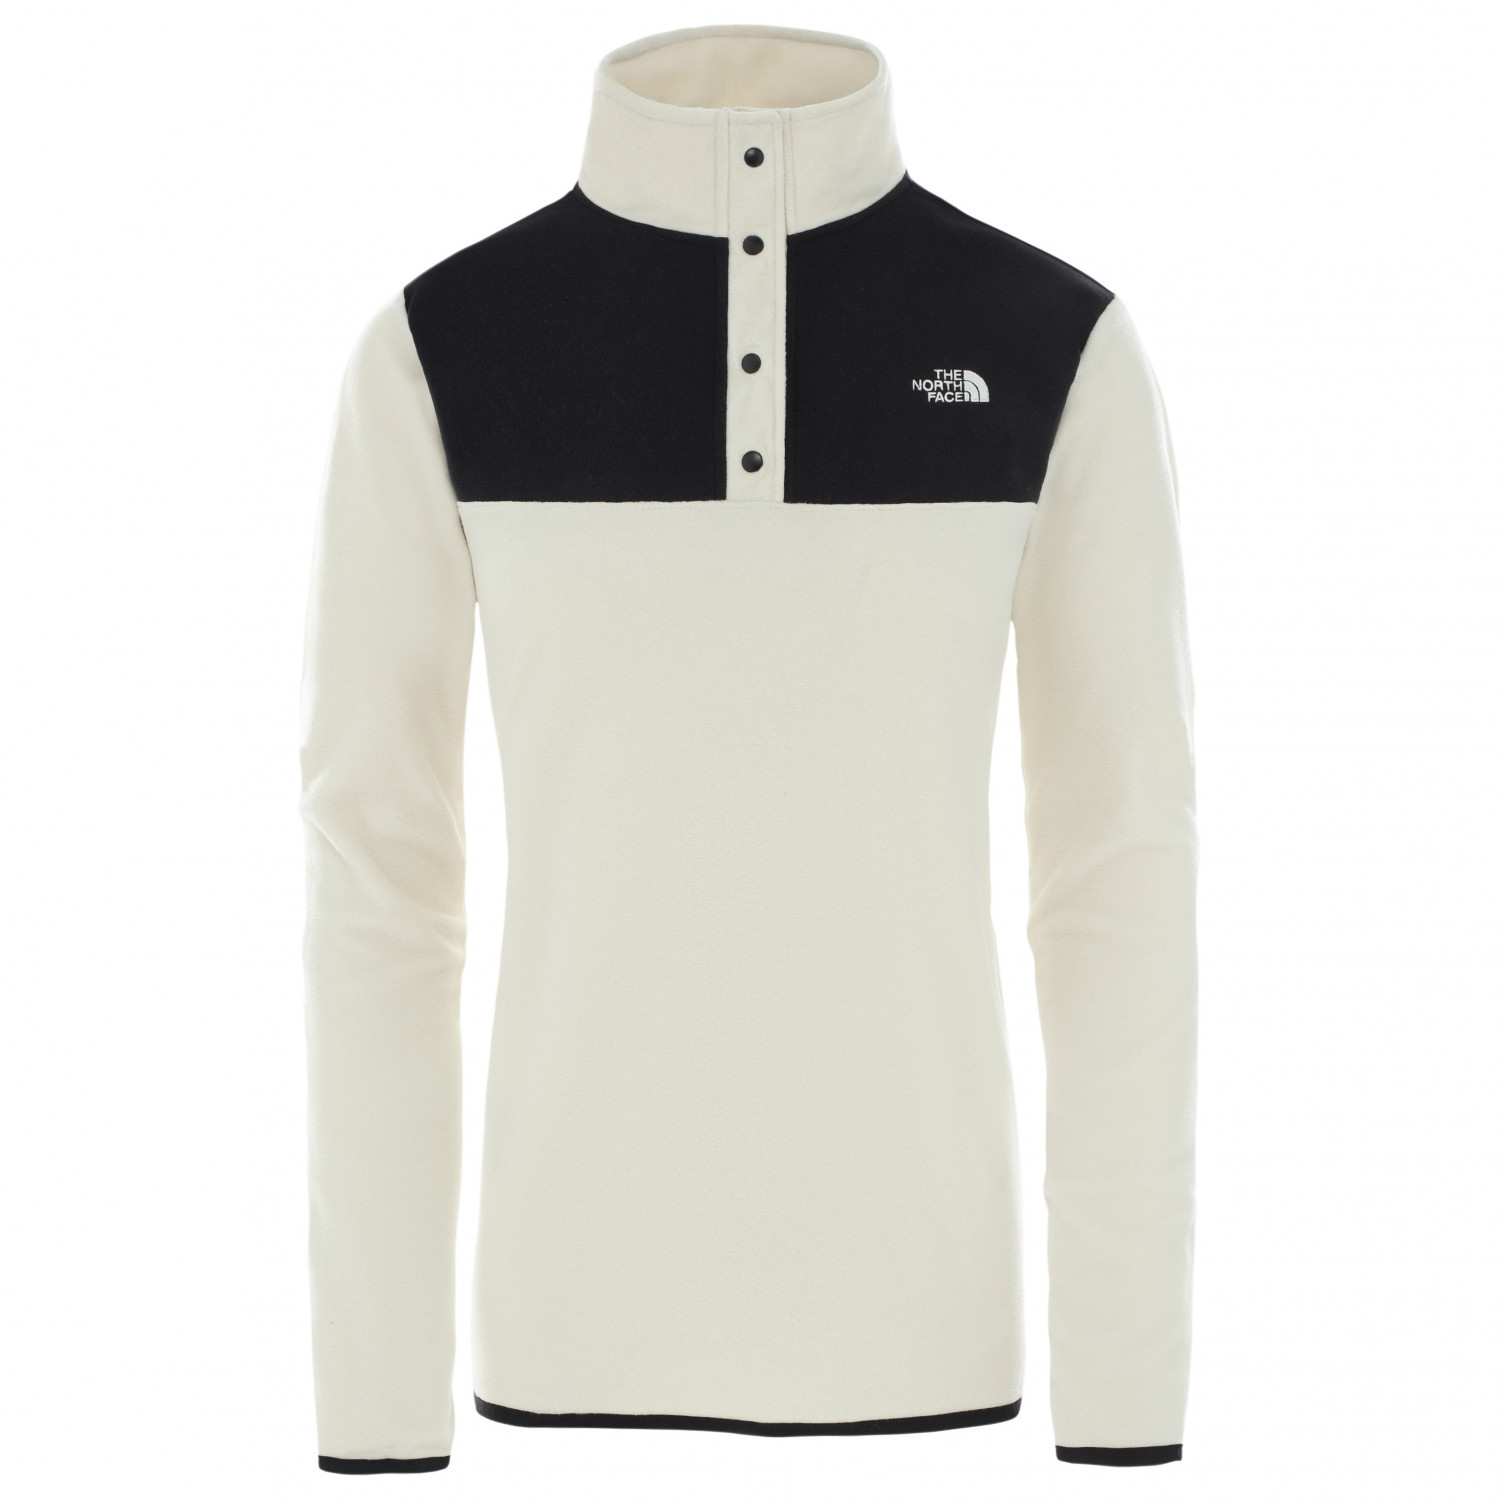 The North Face What The Fleece Pulli Damen FUBT